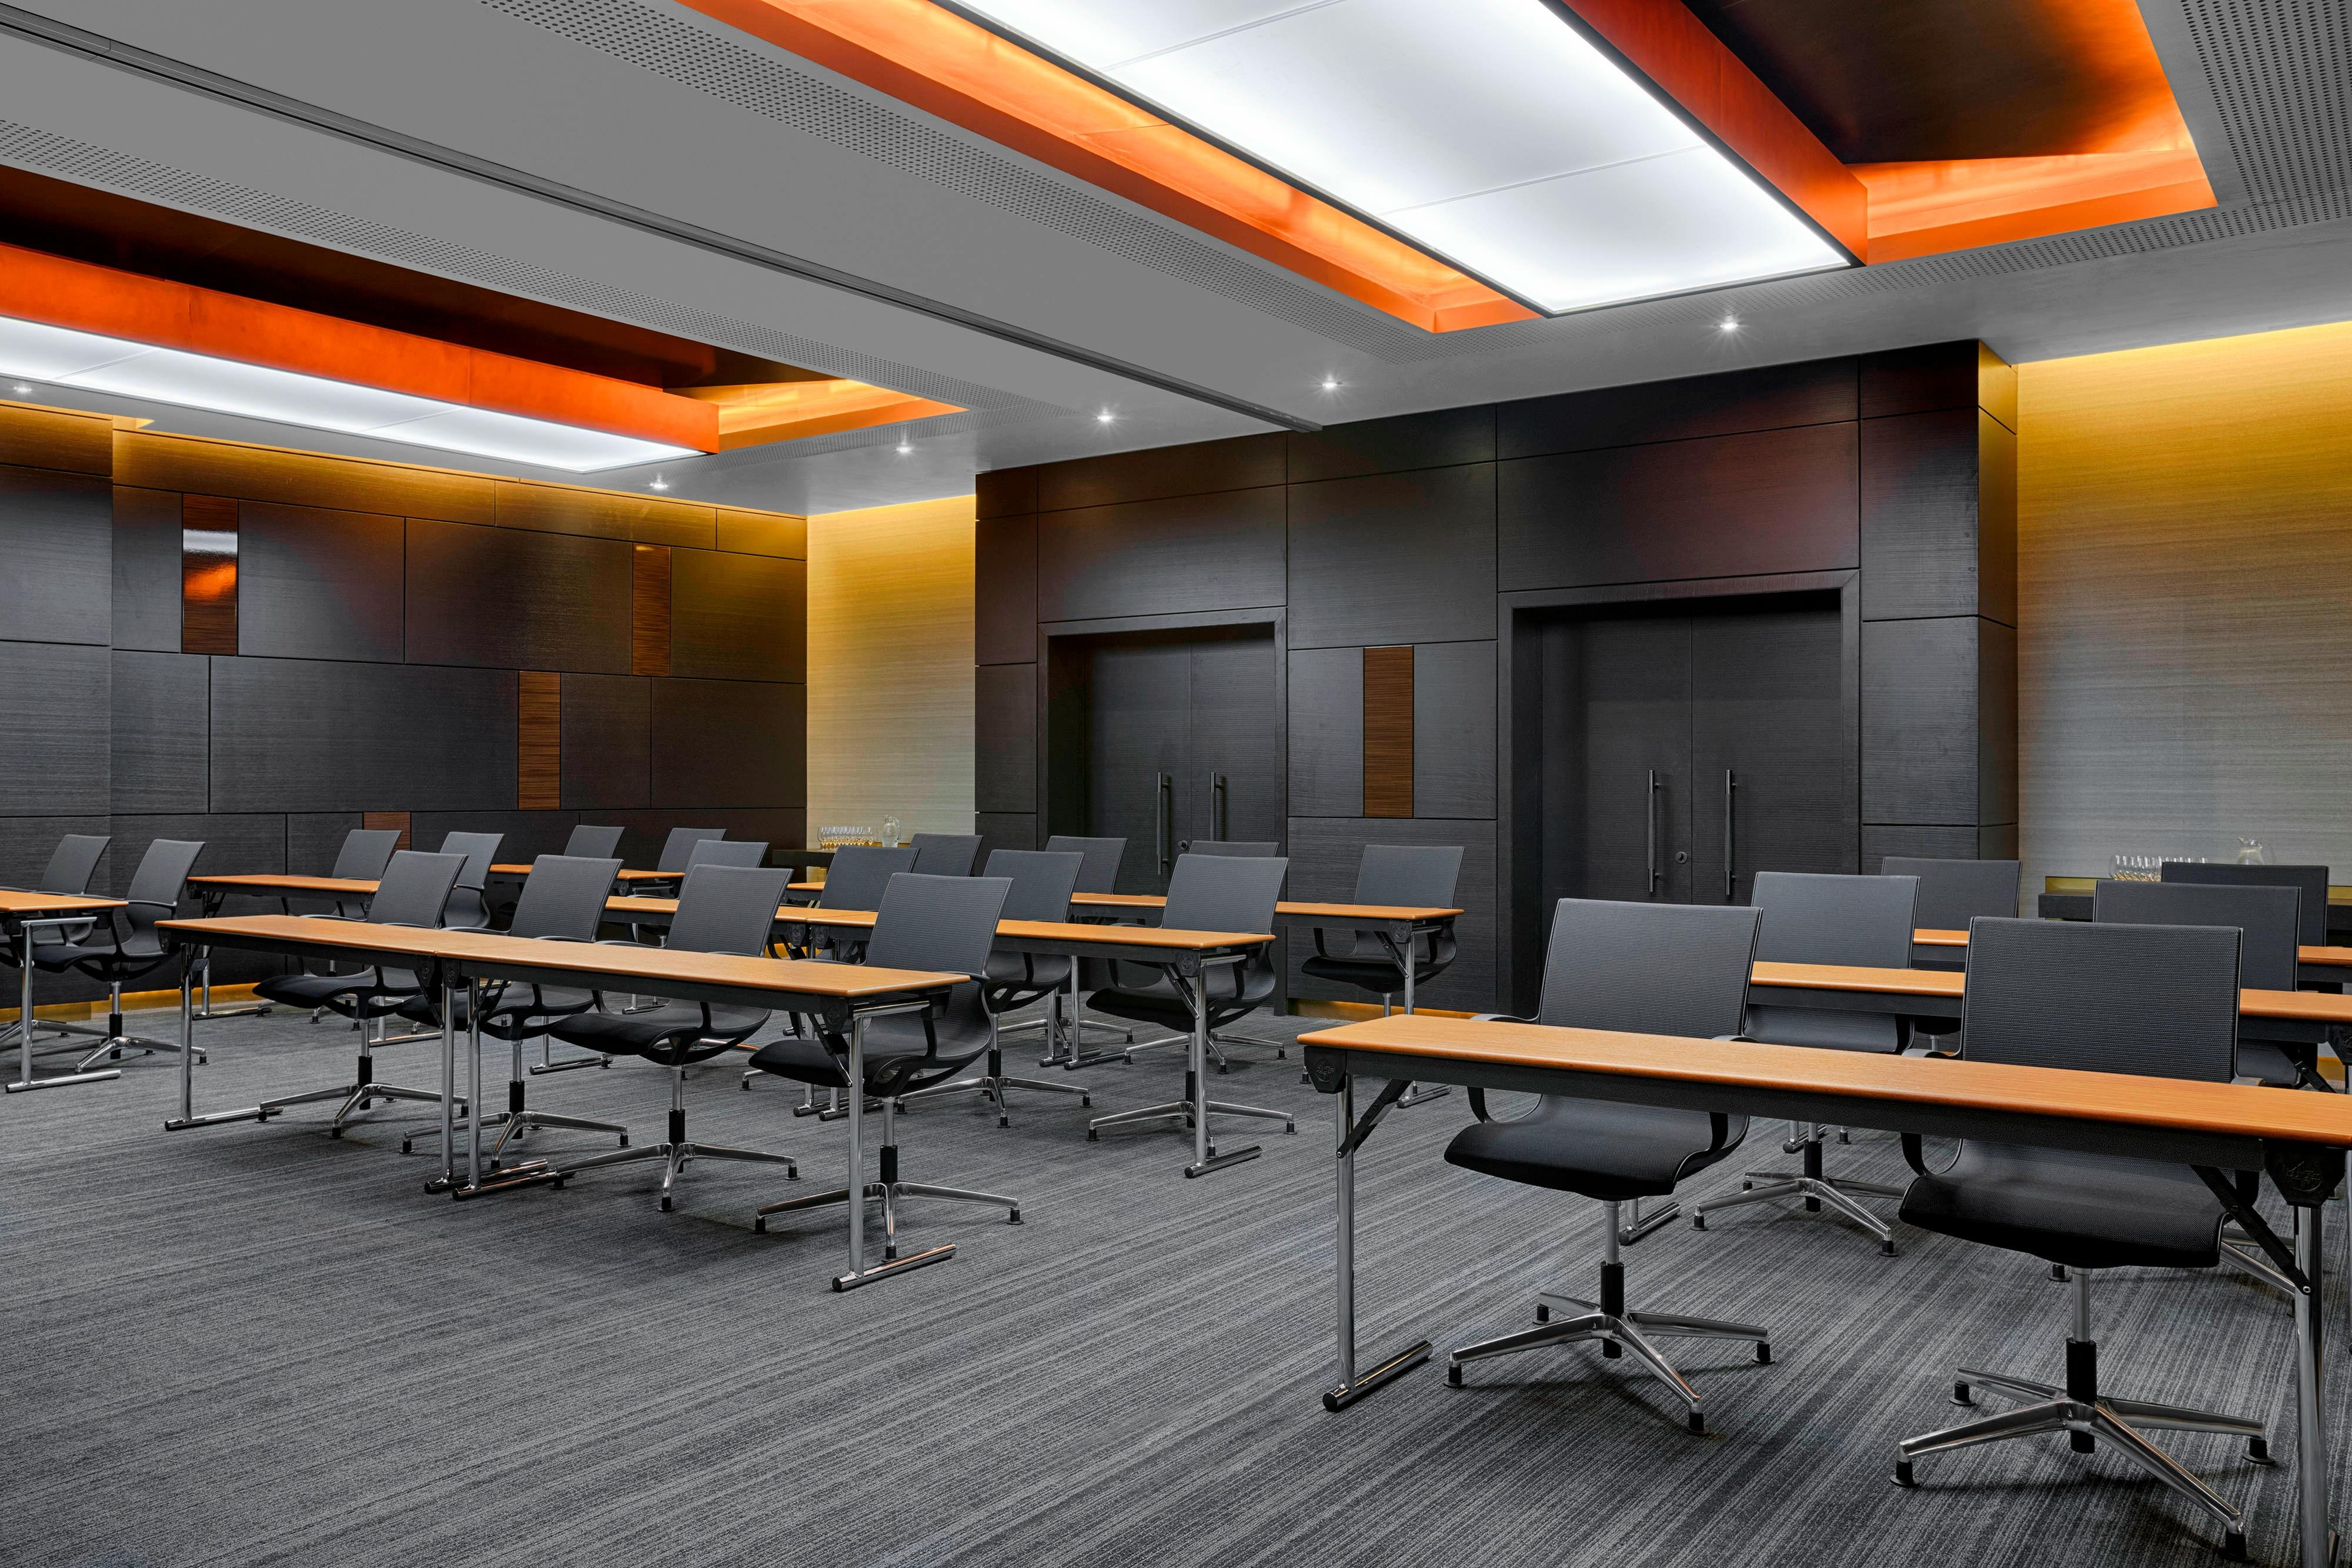 Every Meeting room and Board Room is equipped with state of the art lighting, full audio-visual service, and high-speed internet access. Multimedia presentations can easily be delivered via built-in projectors , as can online product demonstrations, training sessions and video conferences.